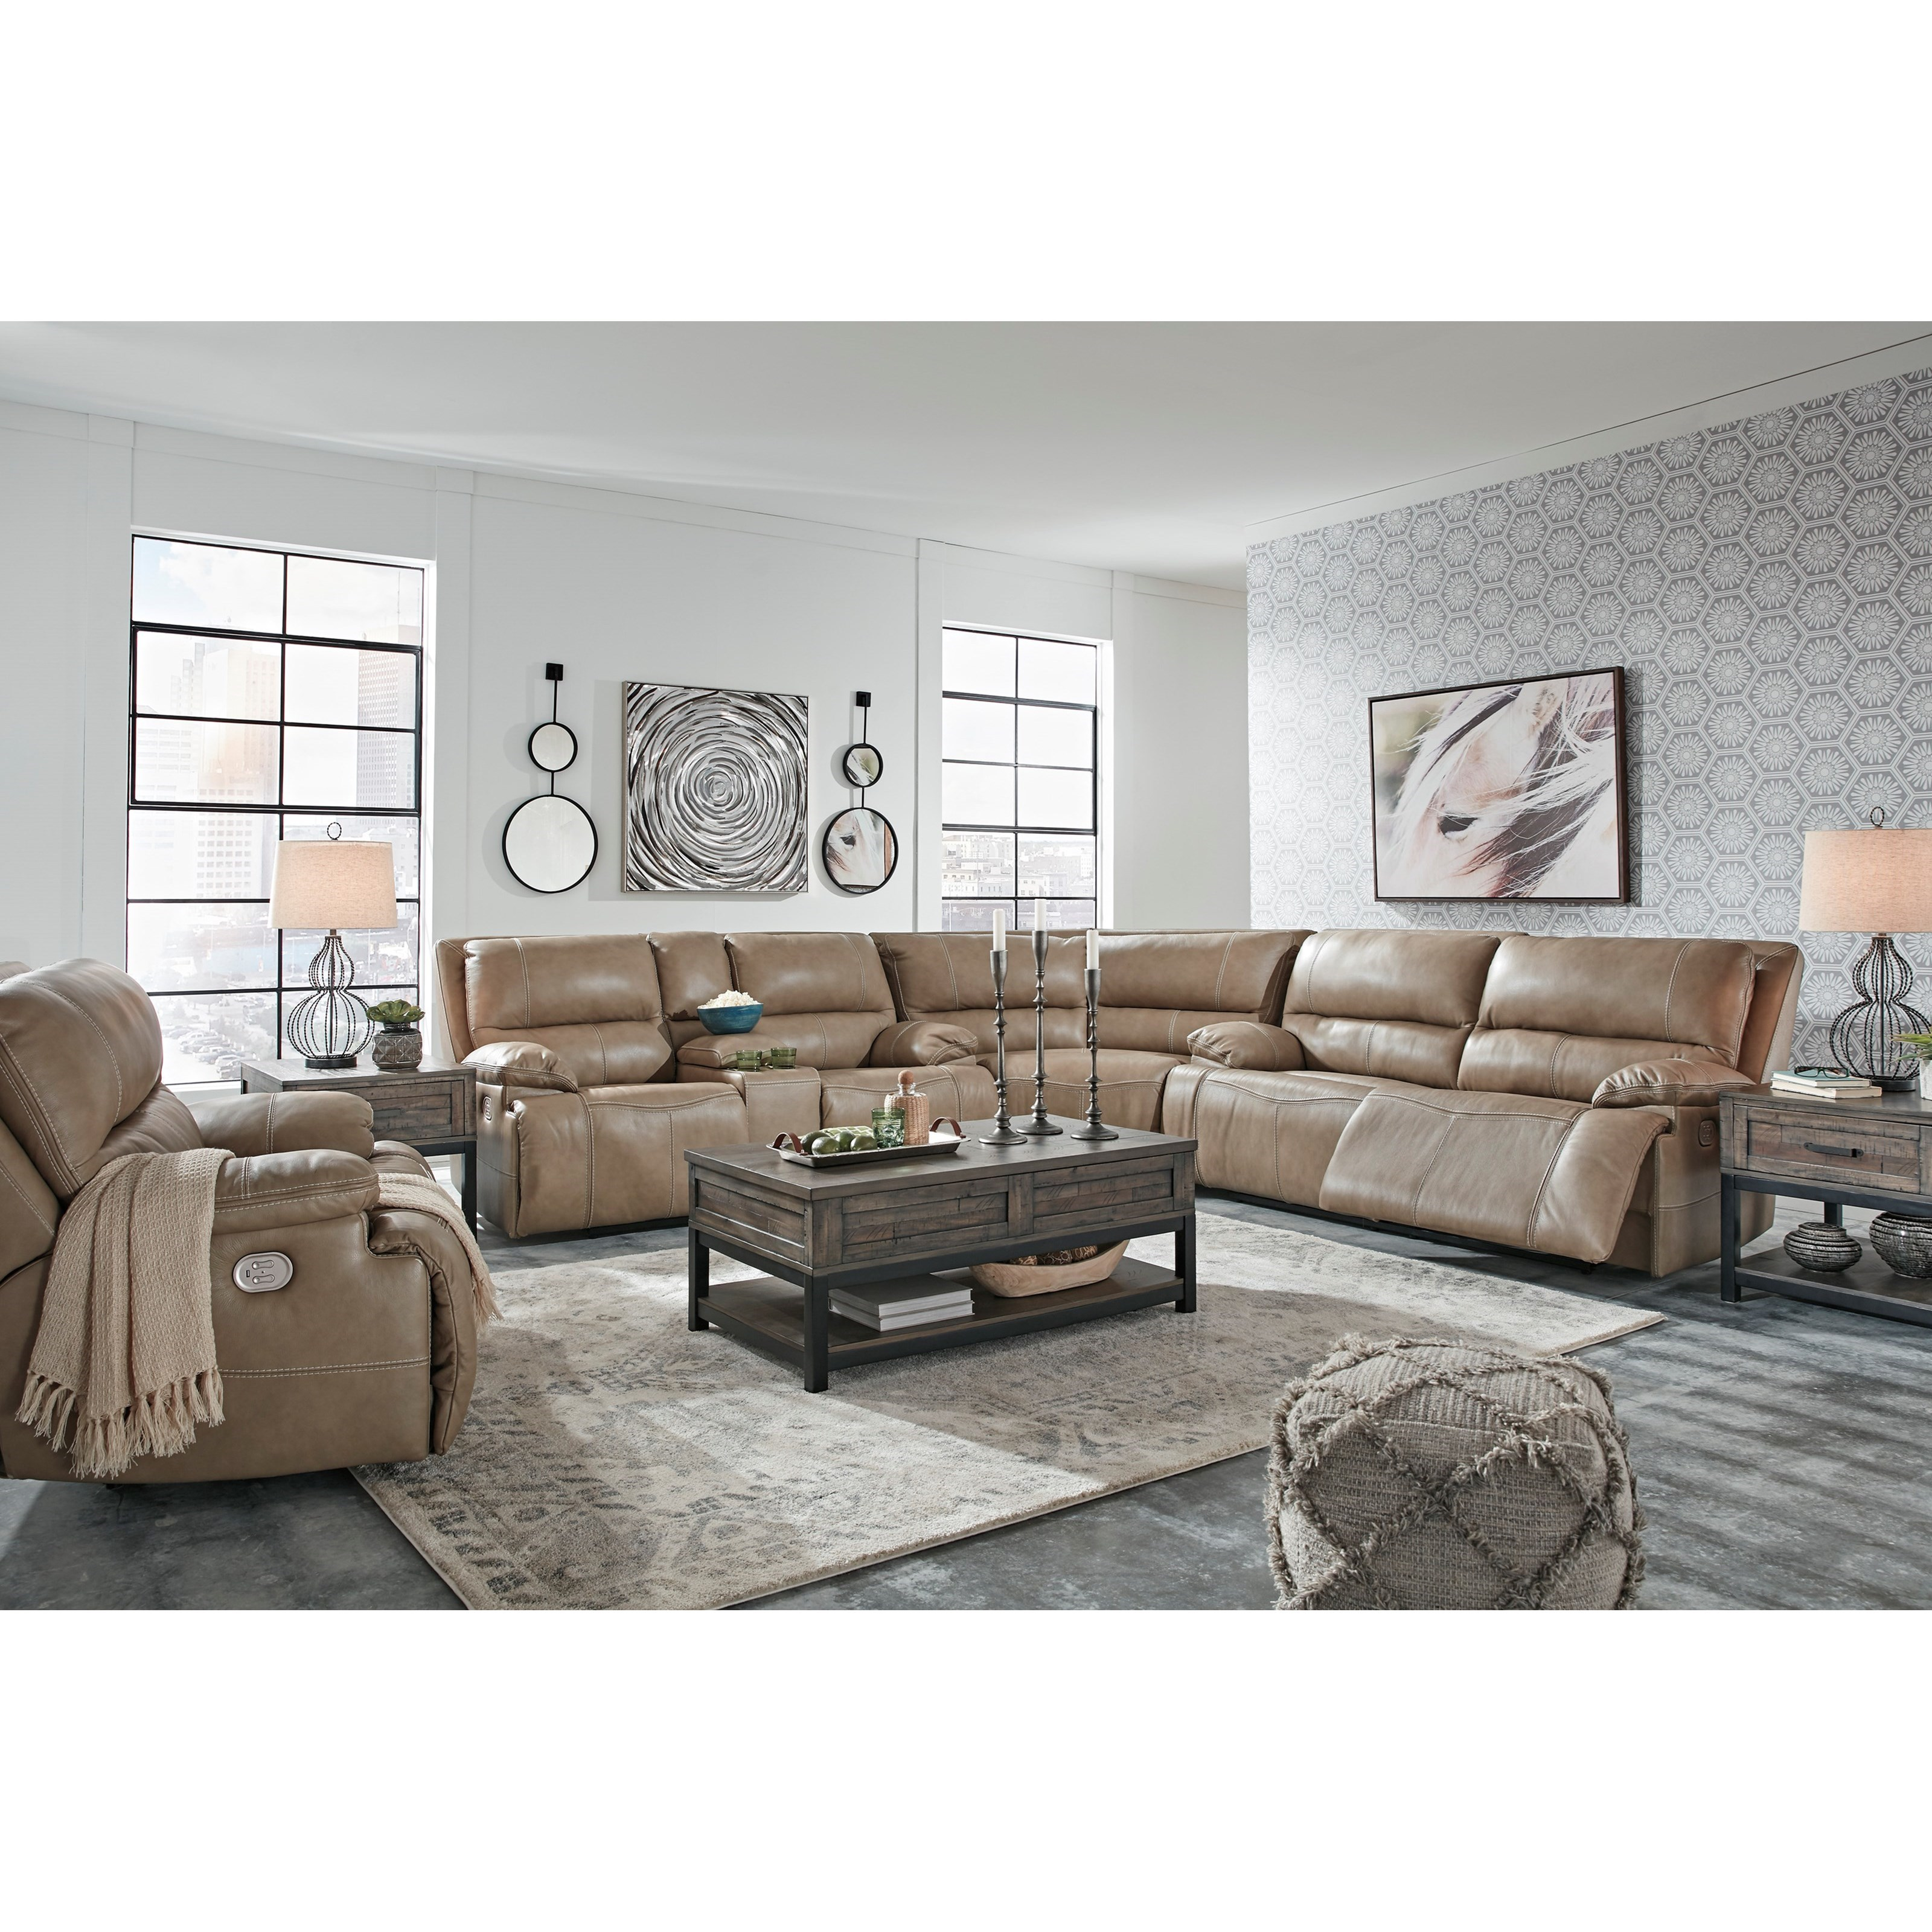 Ricmen Power Reclining Living Room Group by Vendor 3 at Becker Furniture